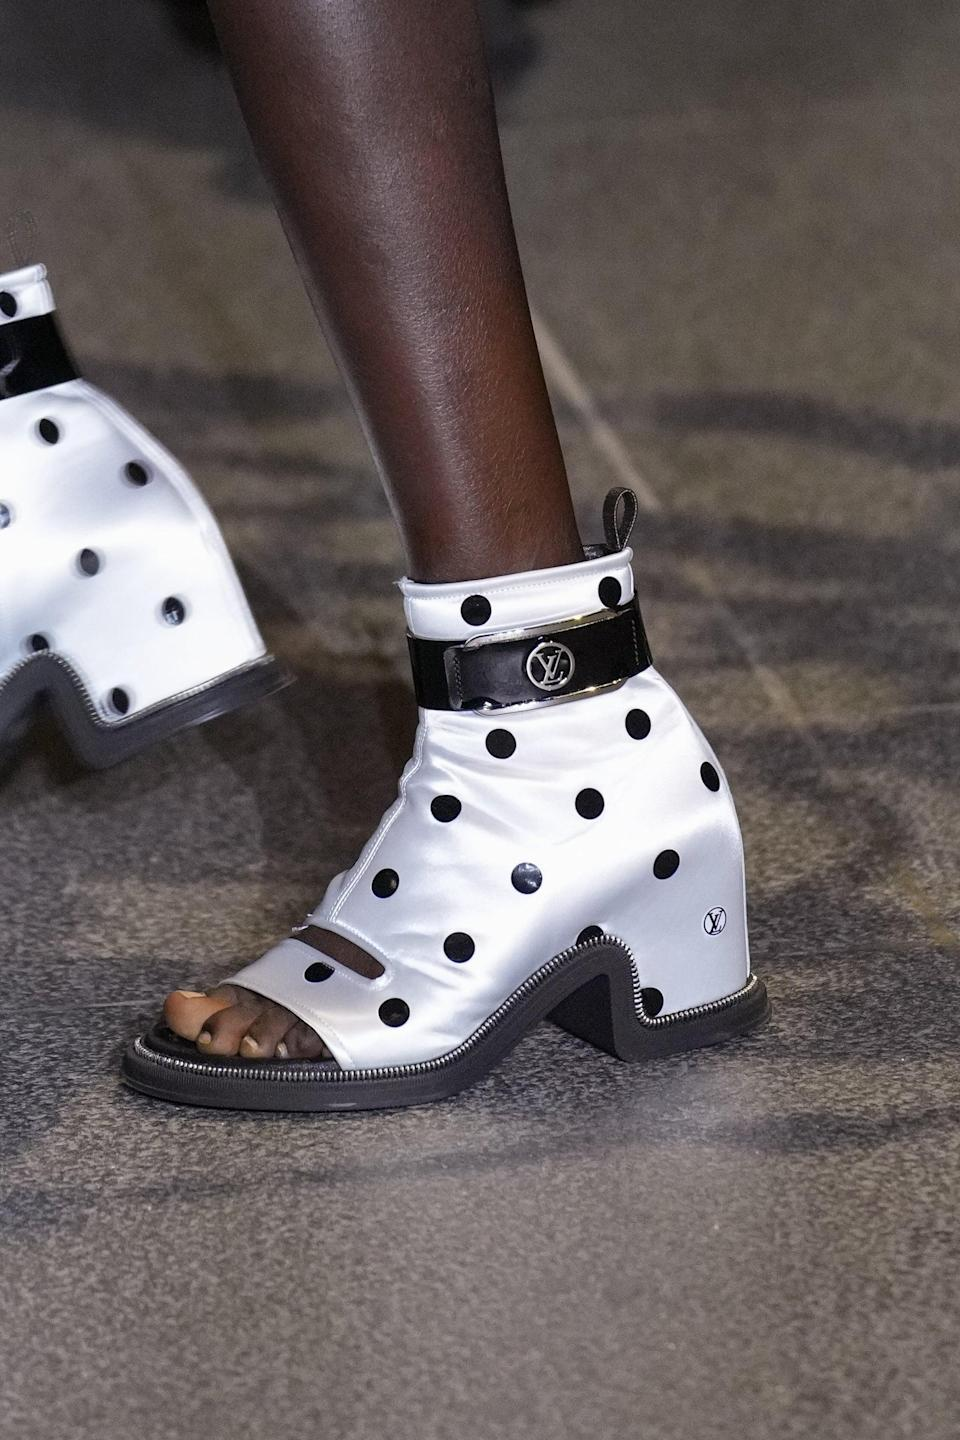 <p>Shoes from Louis Vuittono spring 2022 collection.</p>